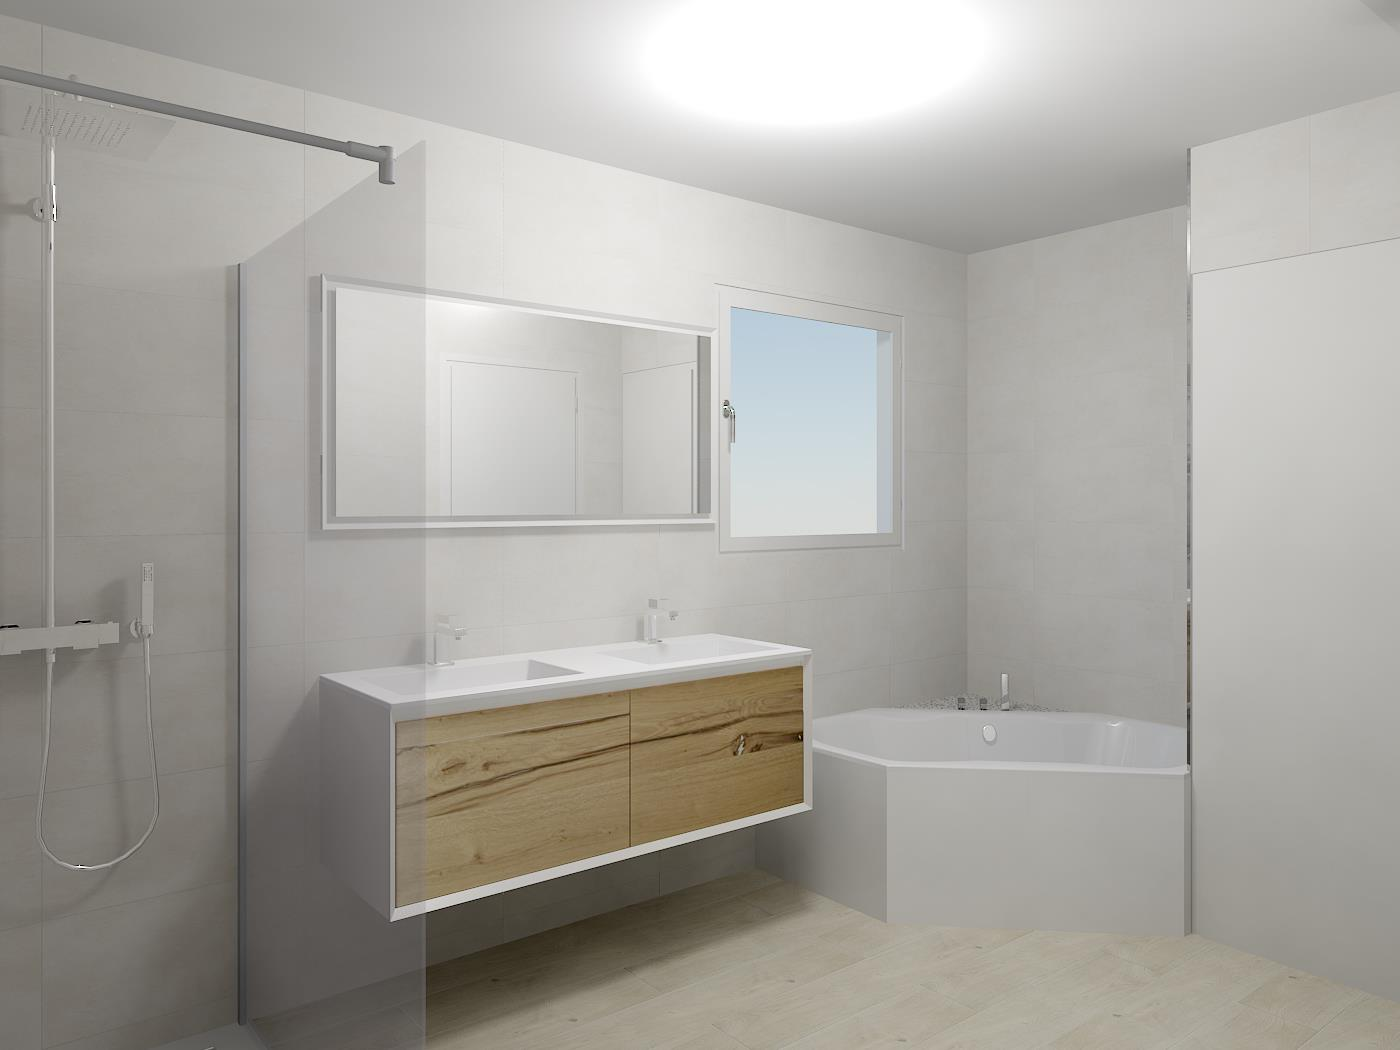 Mattout carrelage dem16617 v3 2 bathroom by mattout for Mattout carrelage aubagne